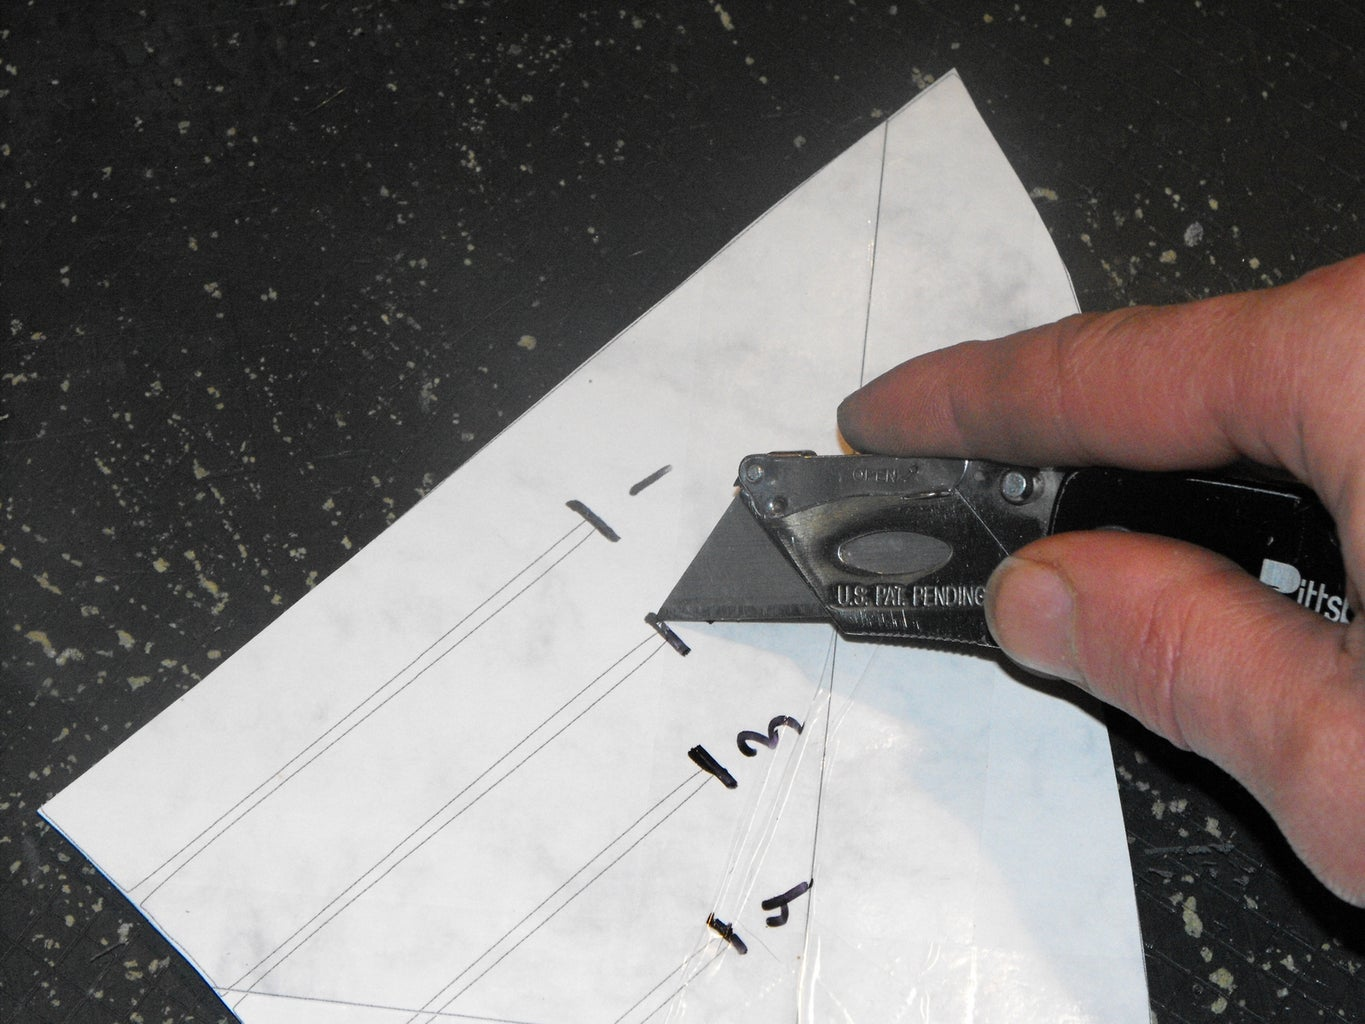 Cut Out All Template Pieces